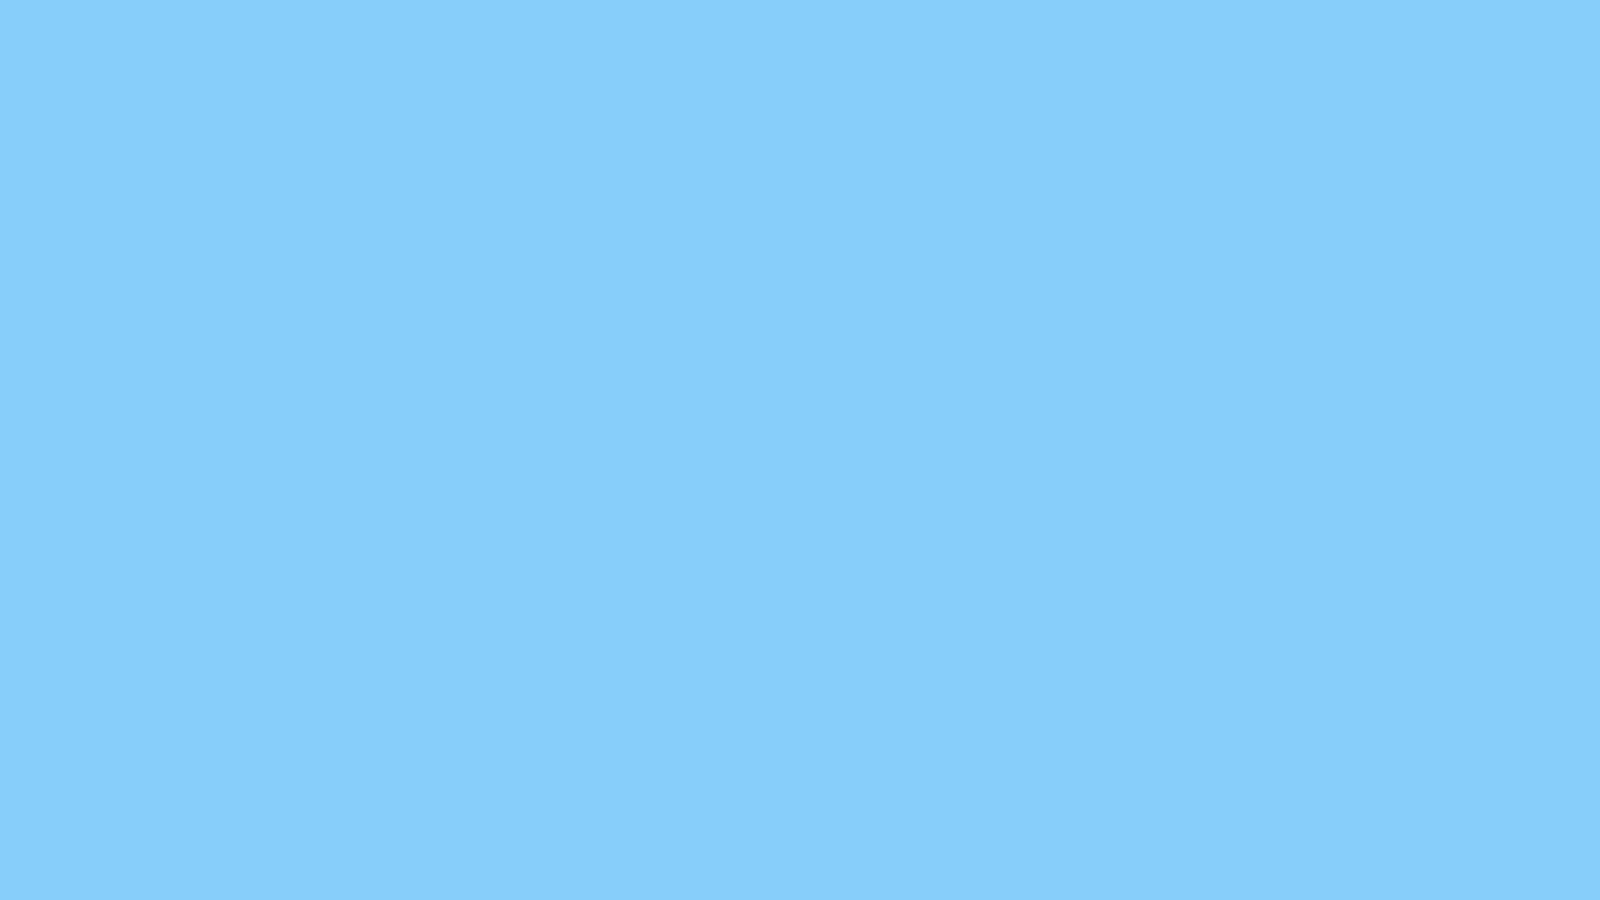 1600x900 Light Sky Blue Solid Color Background